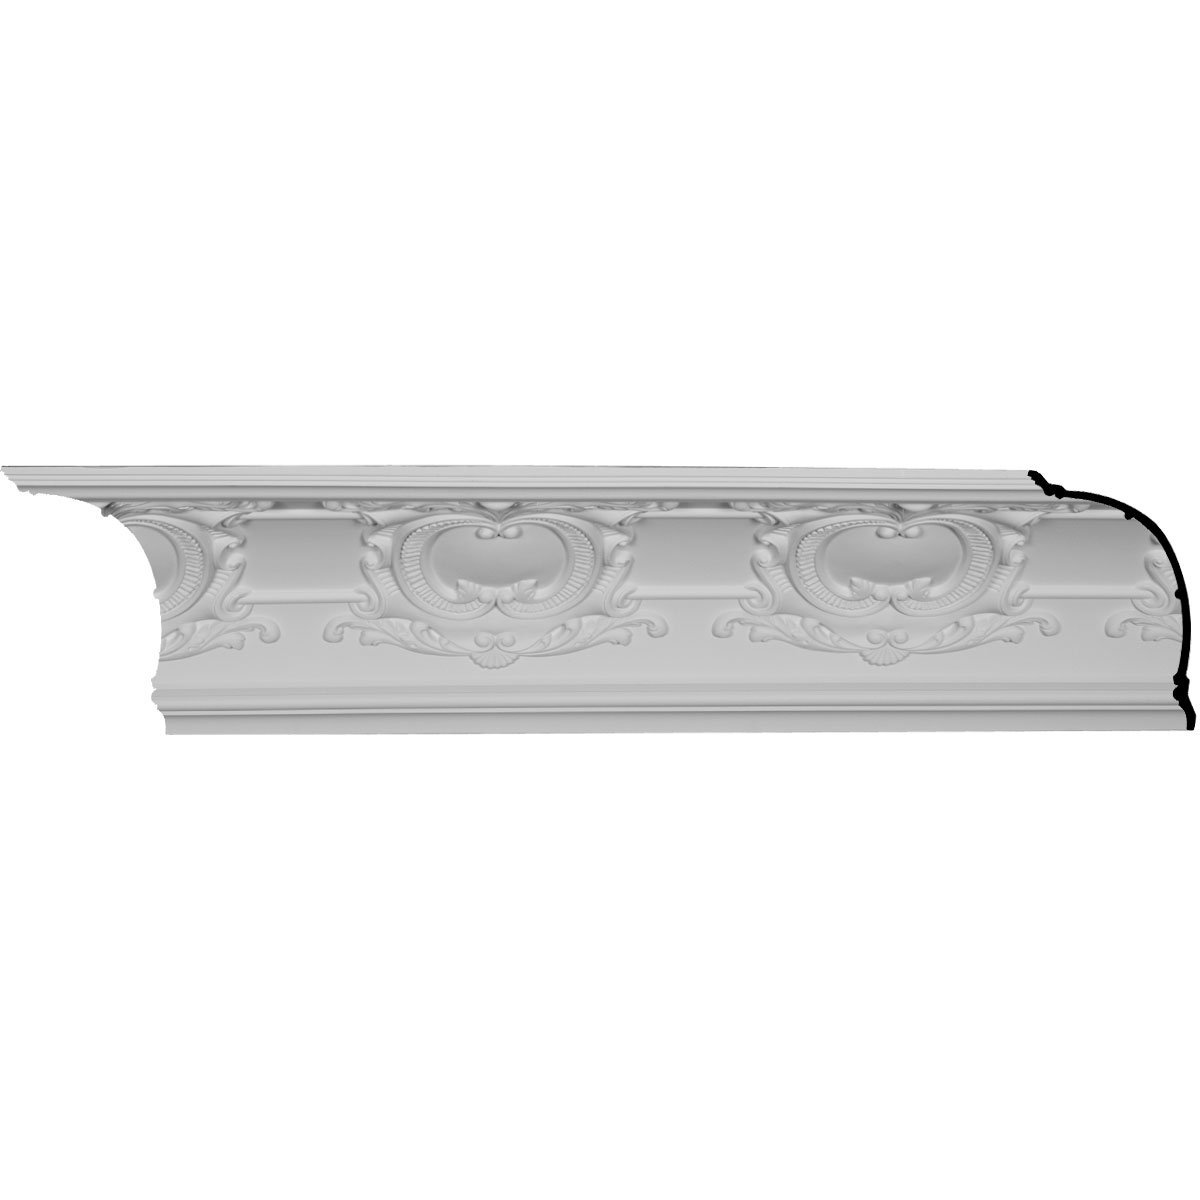 Ekena Millwork MLD12X12X17EM-CASE-8 12'' H x 12-5/8'' P x 17-1/2'' F x 96-1/8'' L Emery Cove Crown Molding with 16'' Repeat (8-Pack)